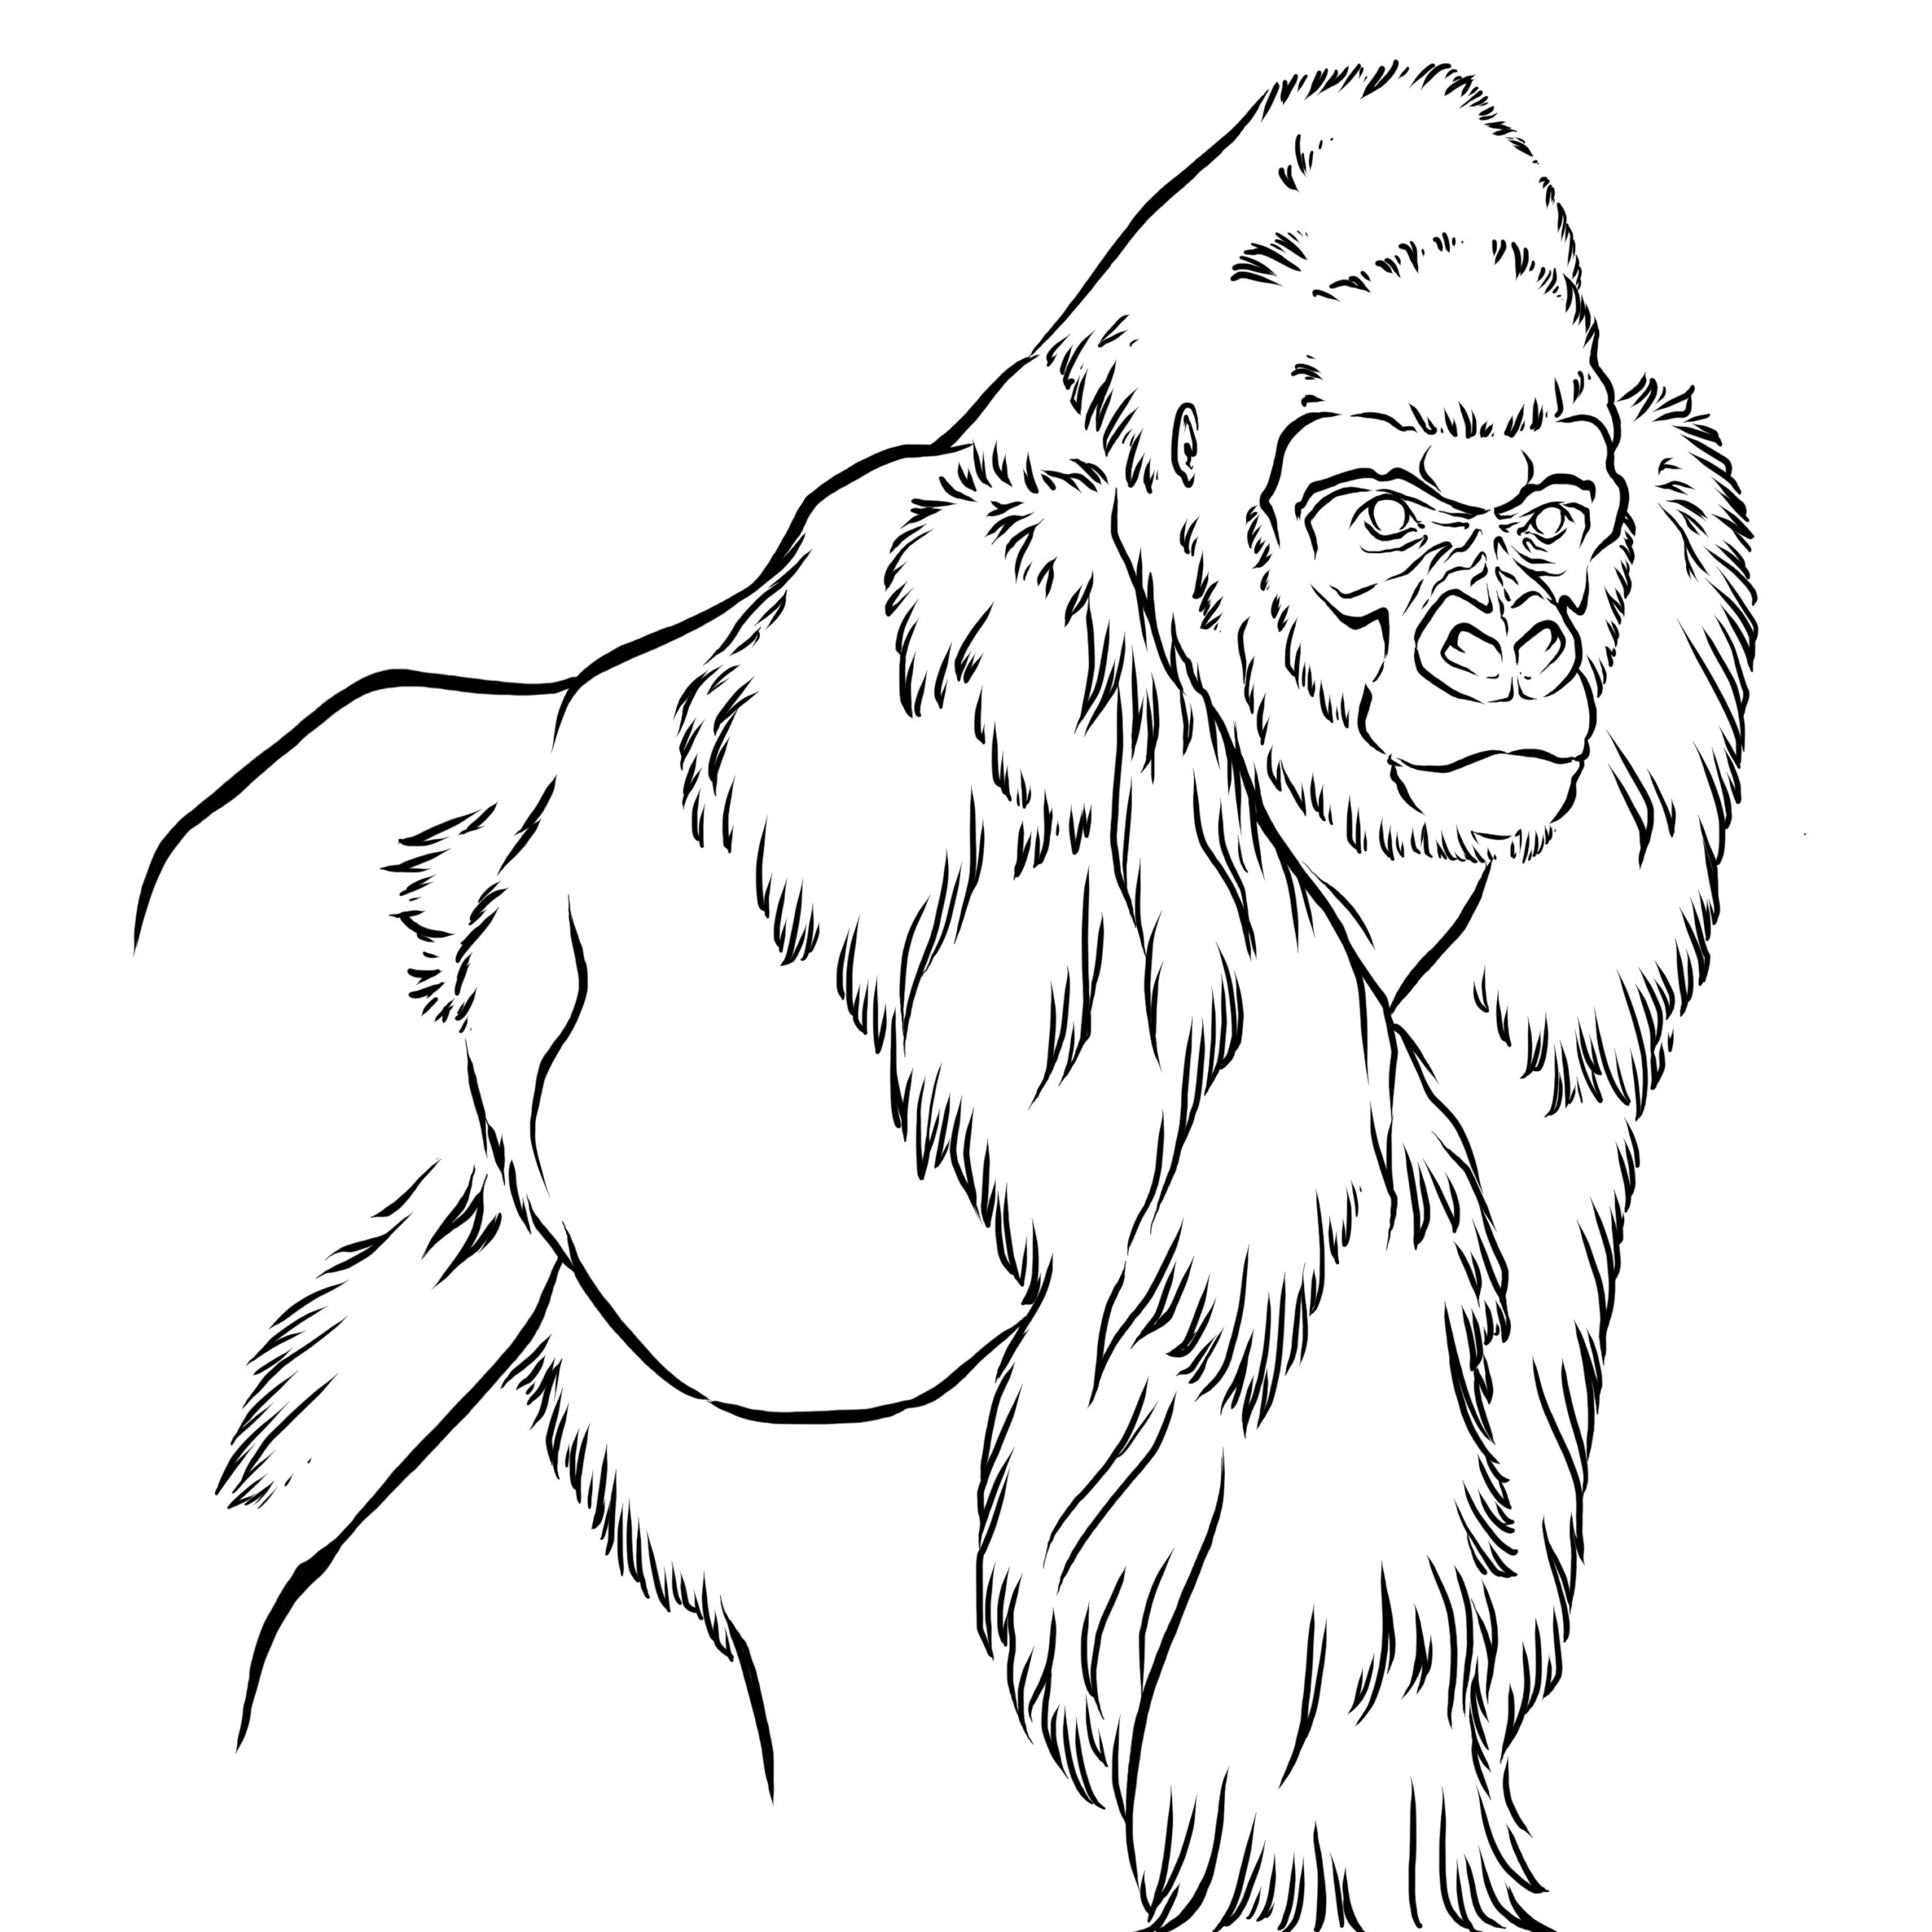 Black and white line drawing of a gorilla